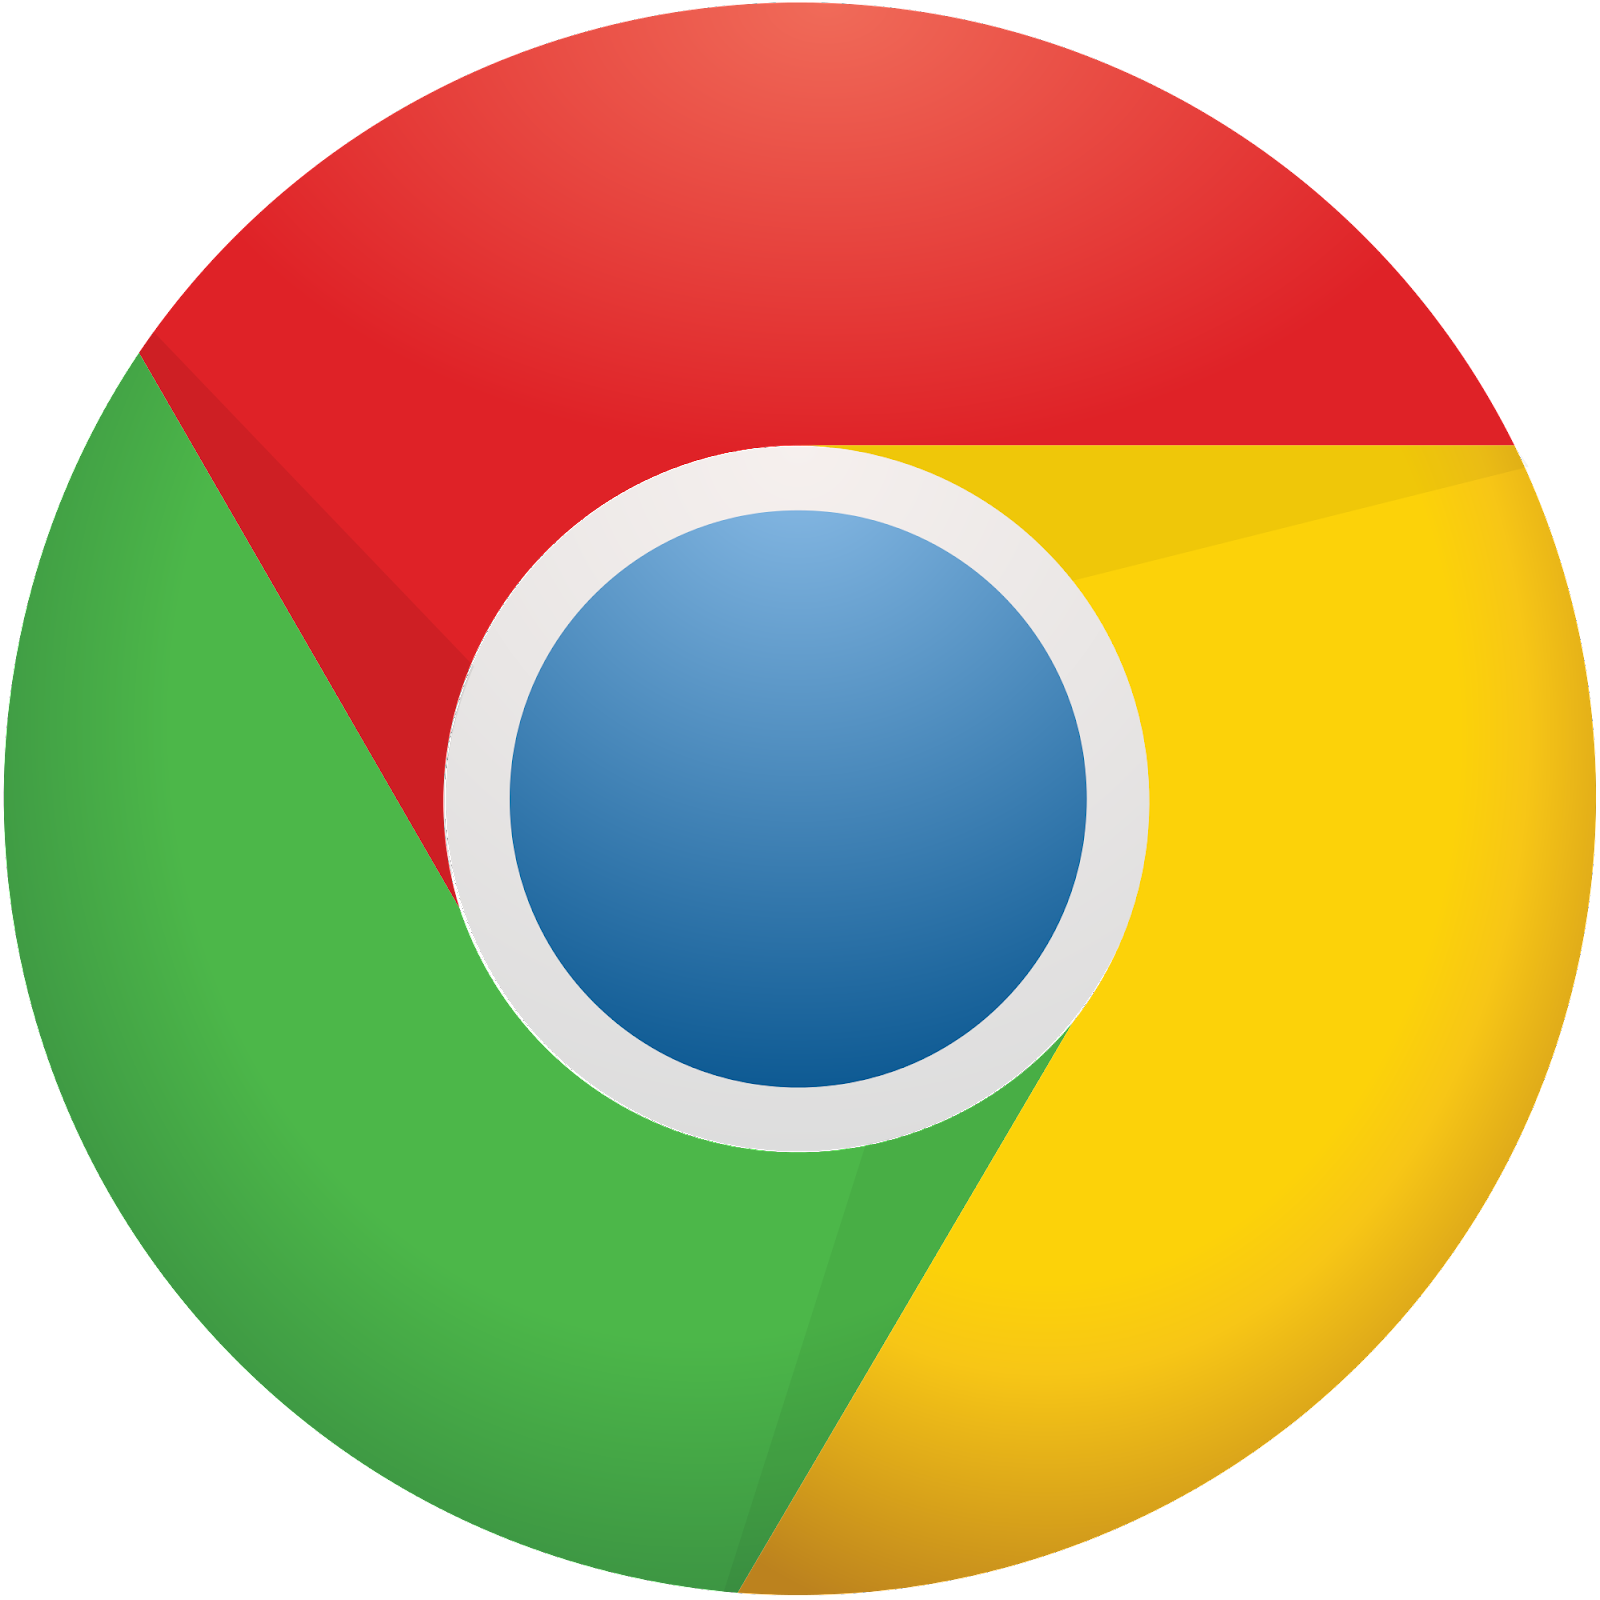 File:Google Chrome icon (2011).svg - Wikimedia Commons